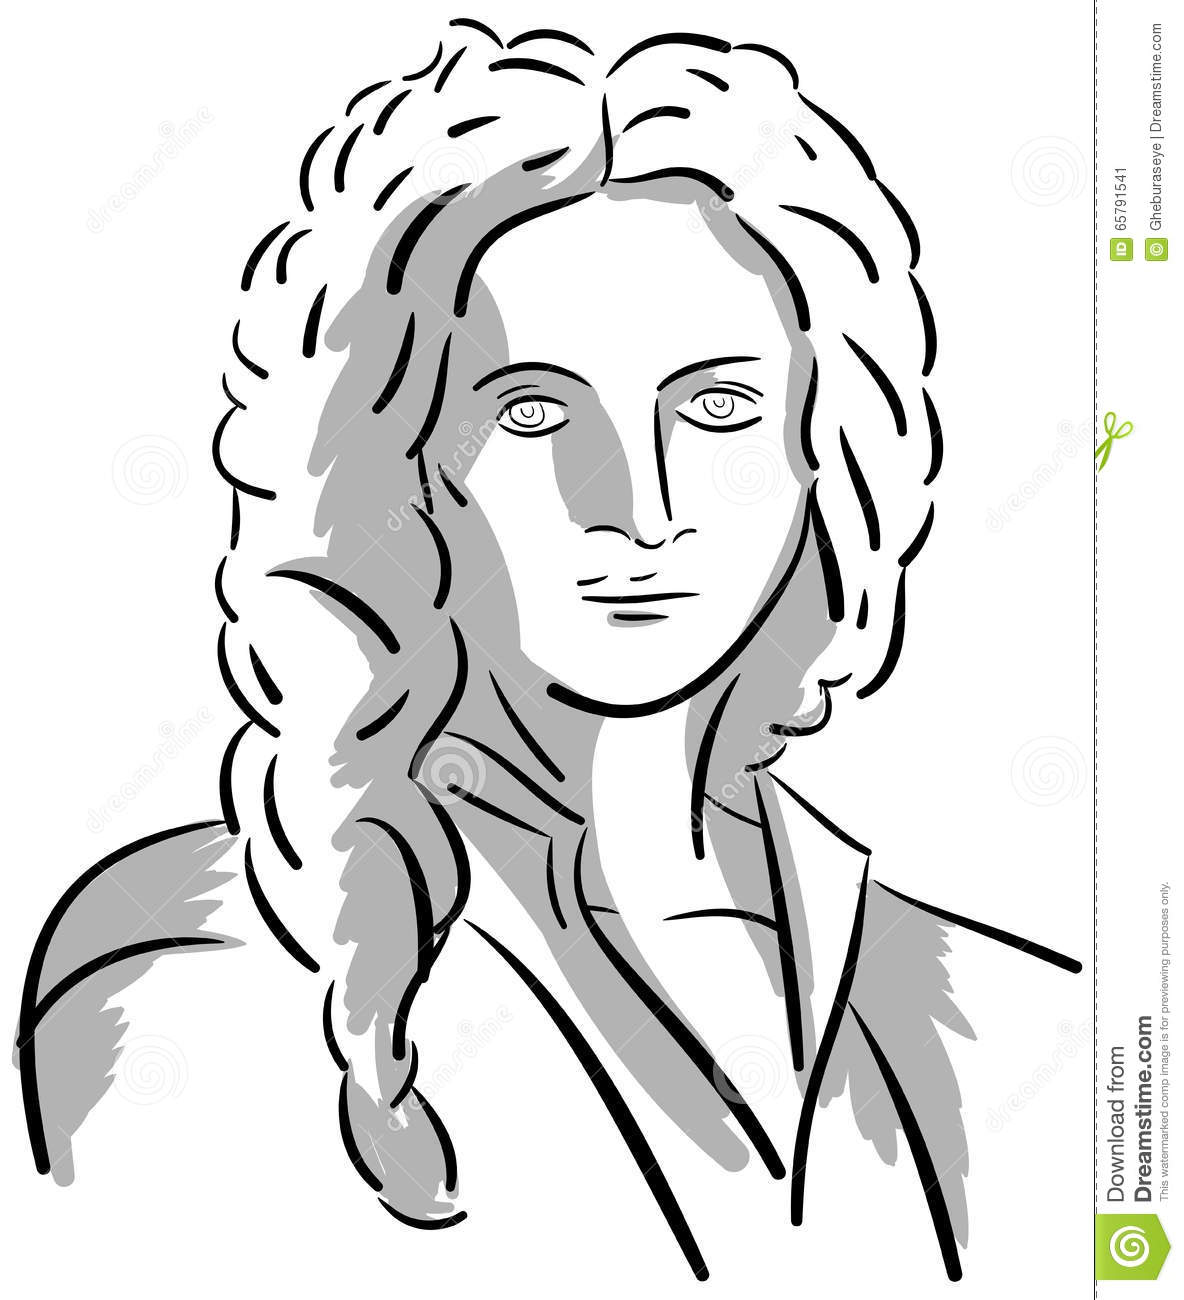 vivaldi coloring pages - photo#18